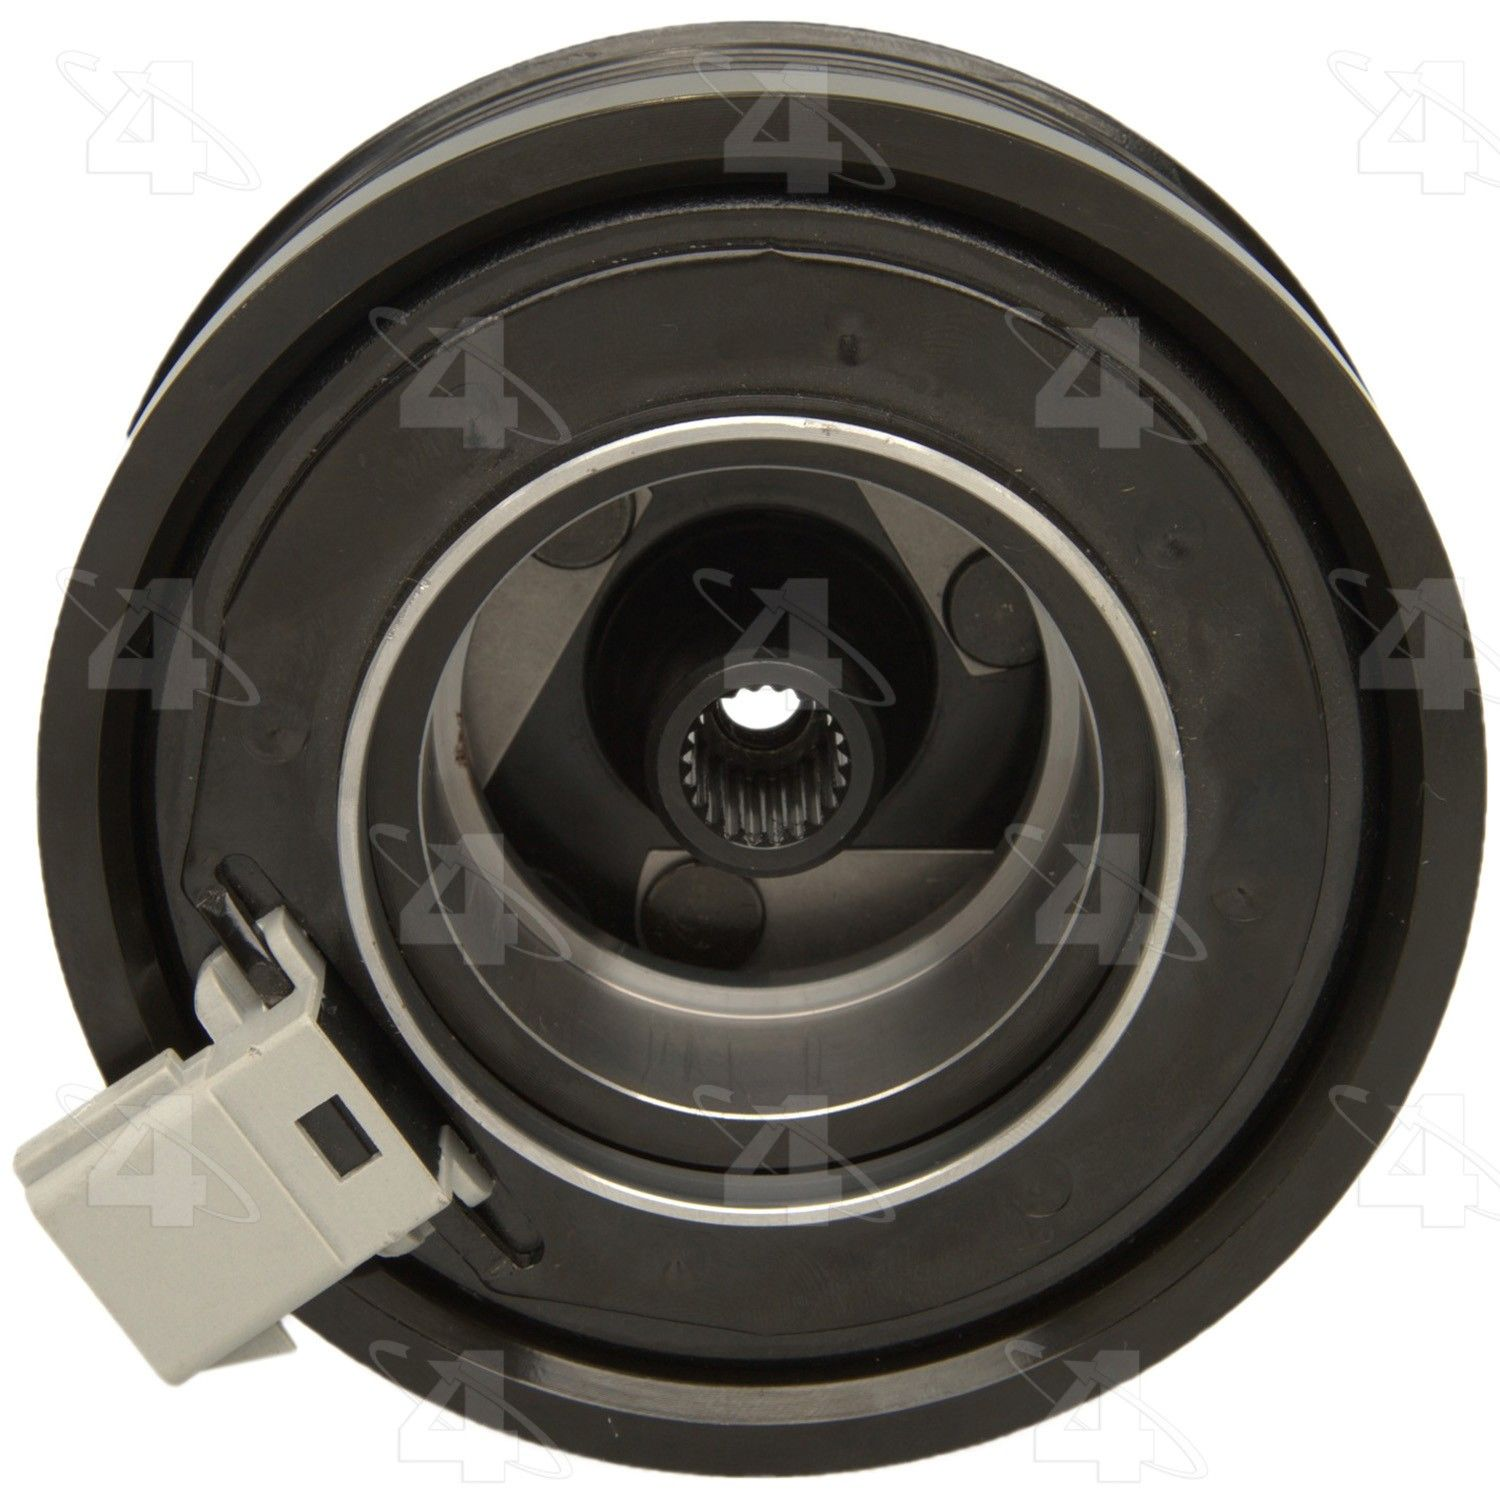 A/C Compressor Clutch Replacement (ACDelco, Air Products